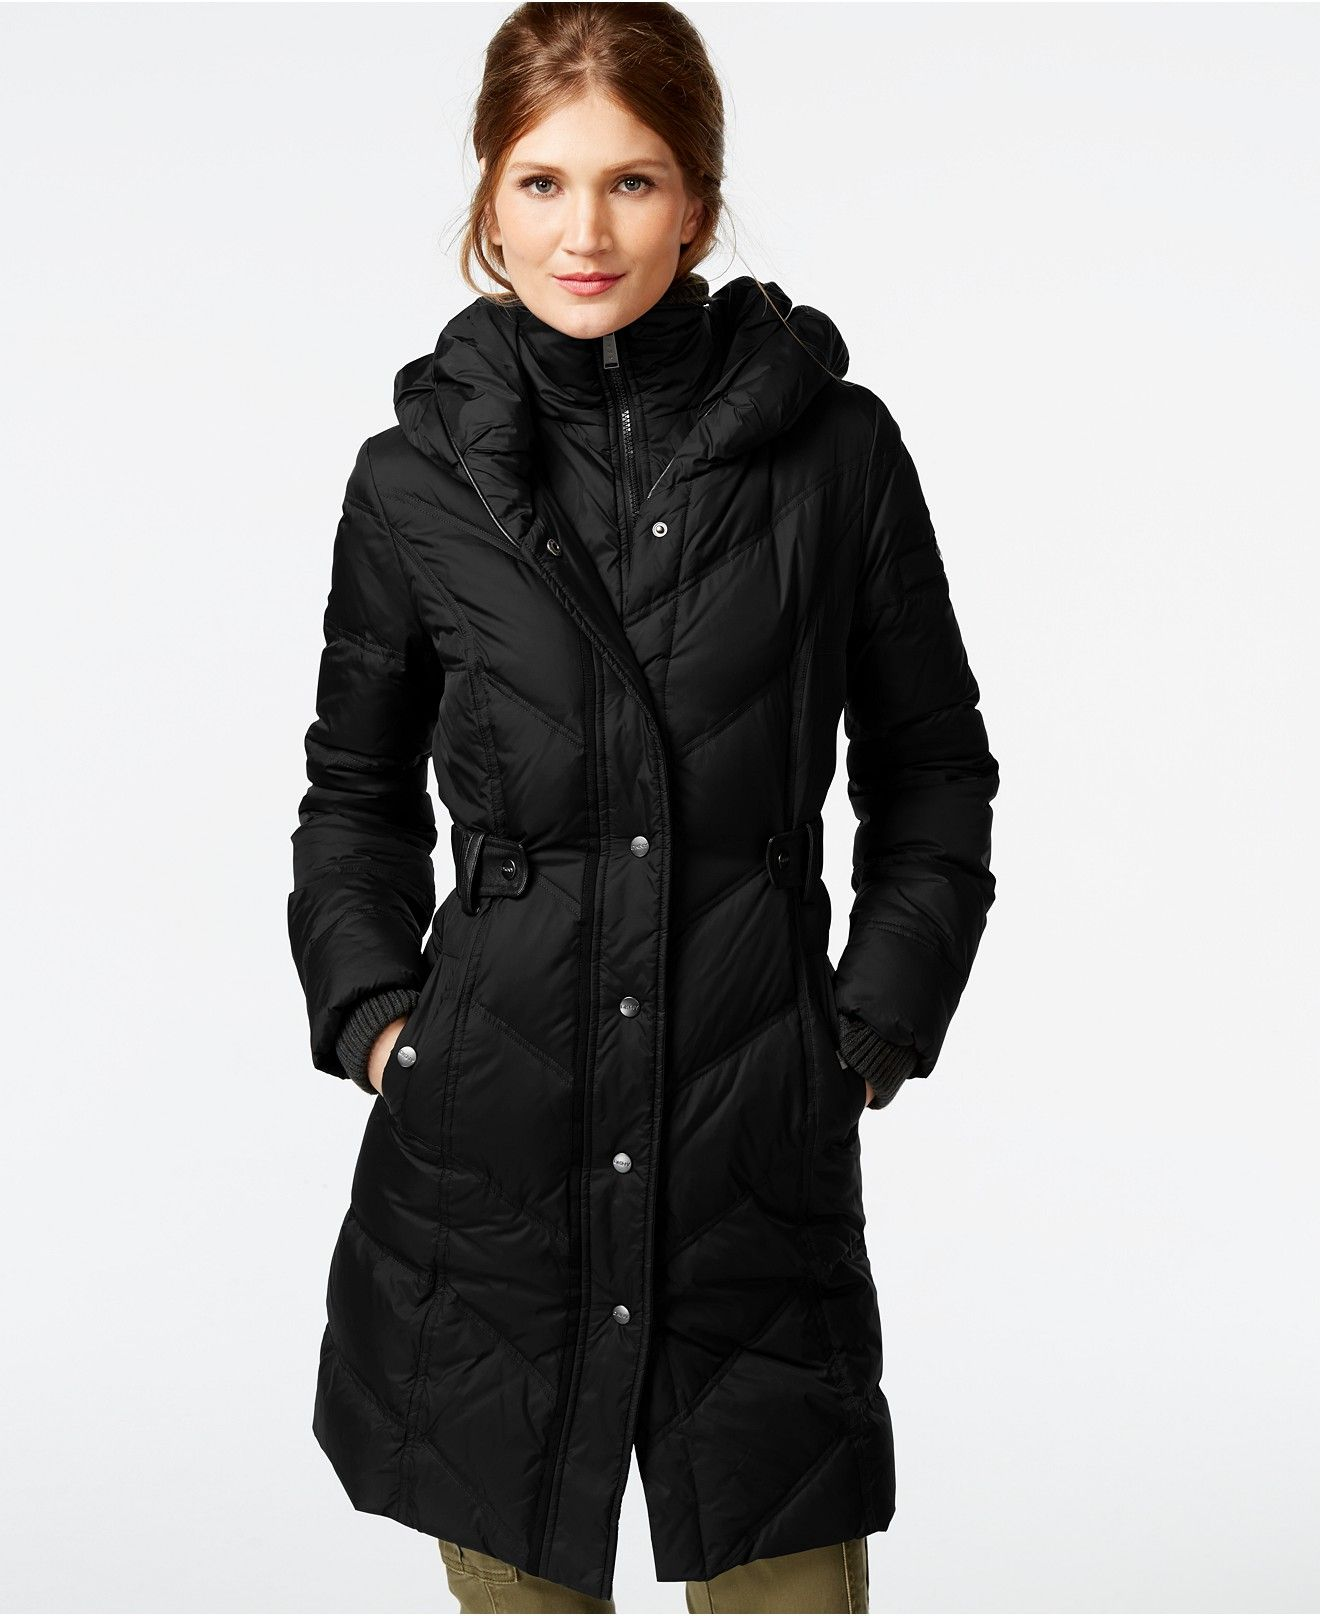 f41d8324f6ee3 DKNY Faux-Leather-Trim Quilted Down Coat - Coats - Women - Macy's ...